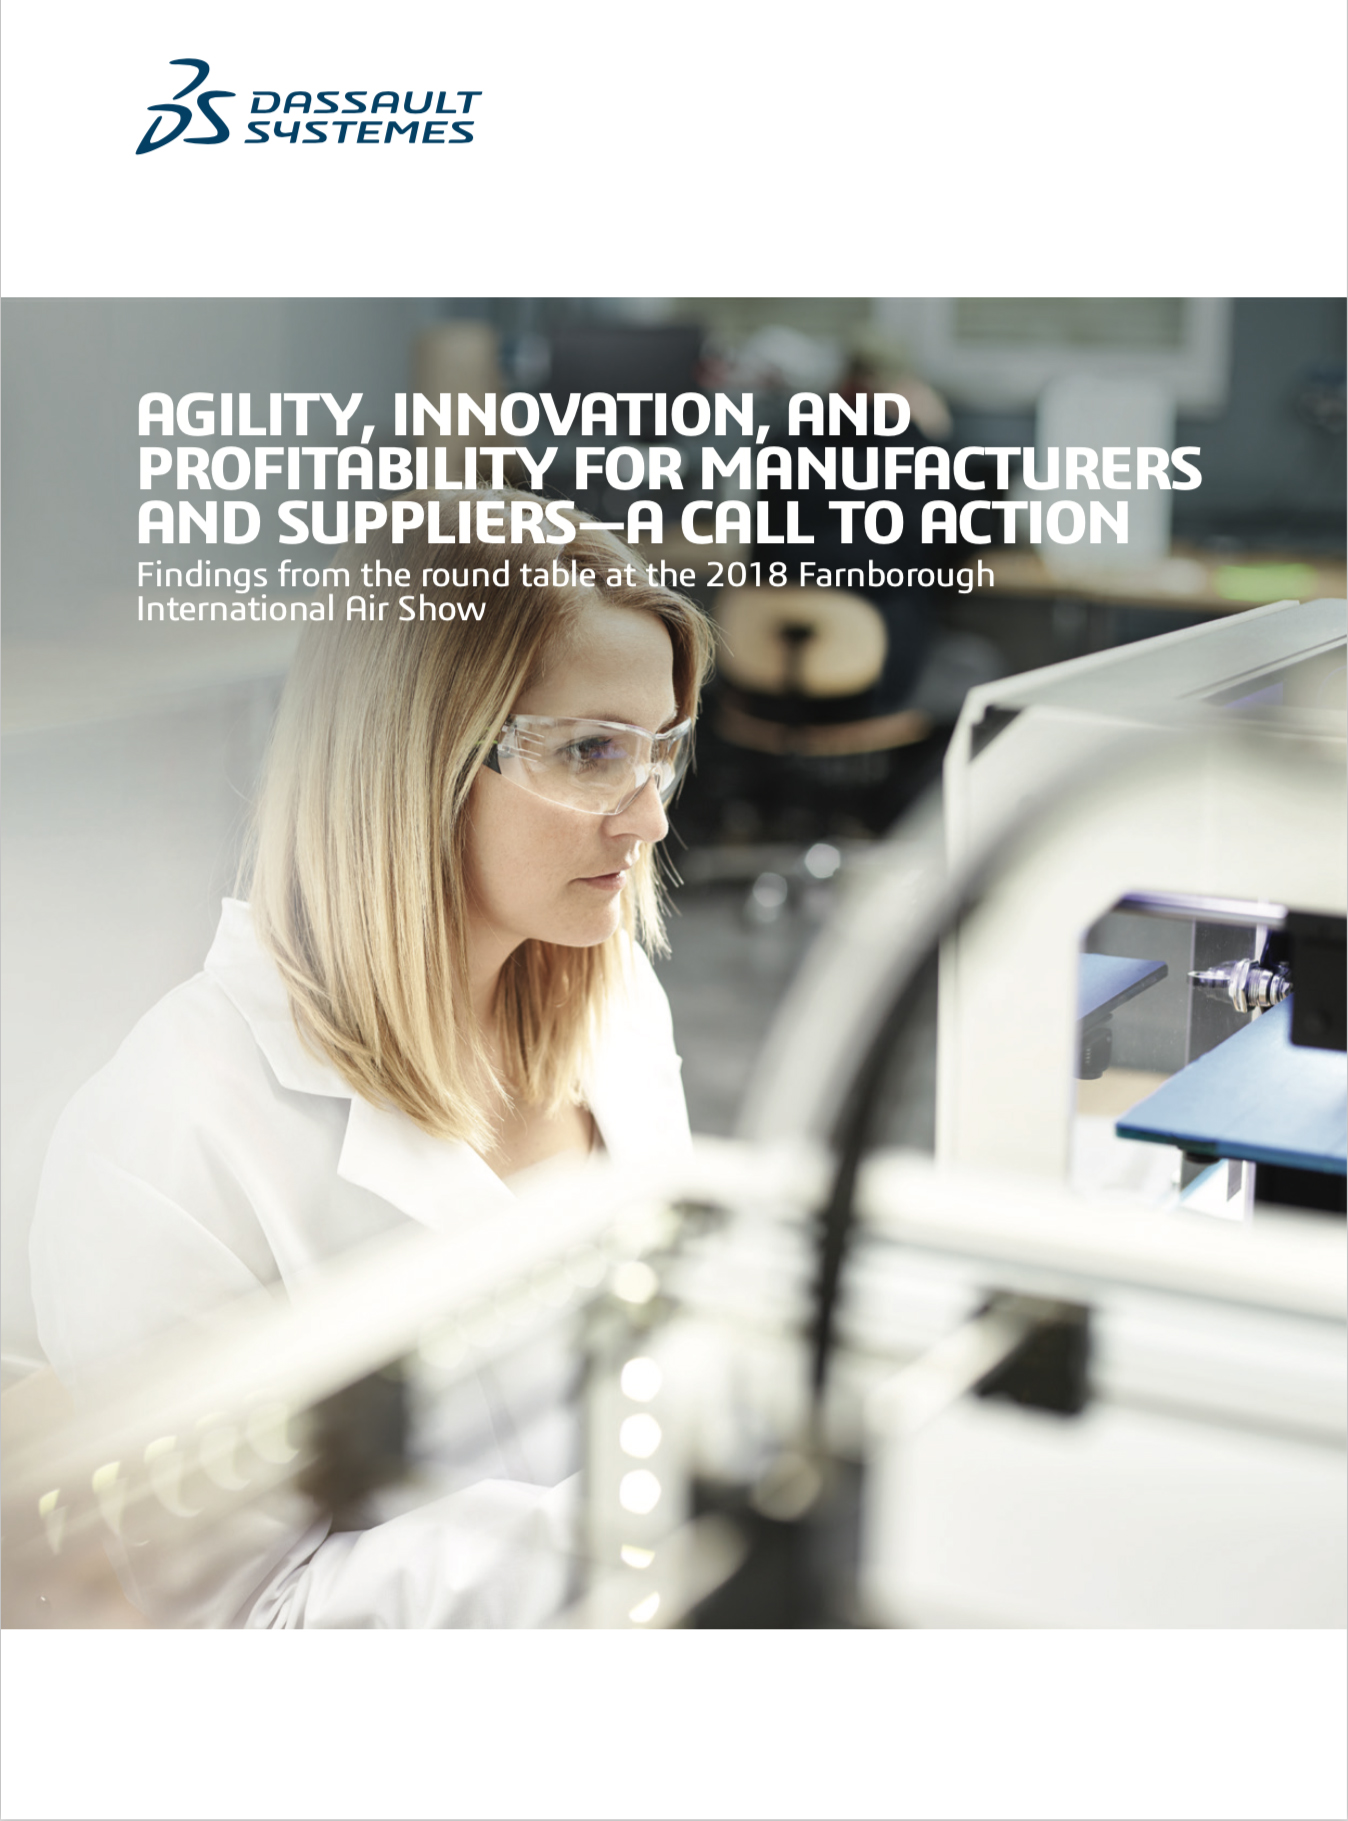 Dassault Systemes whitepaper - Agility, Innovation & Profitability for Manufacturers and Suppliers – A Call to Action